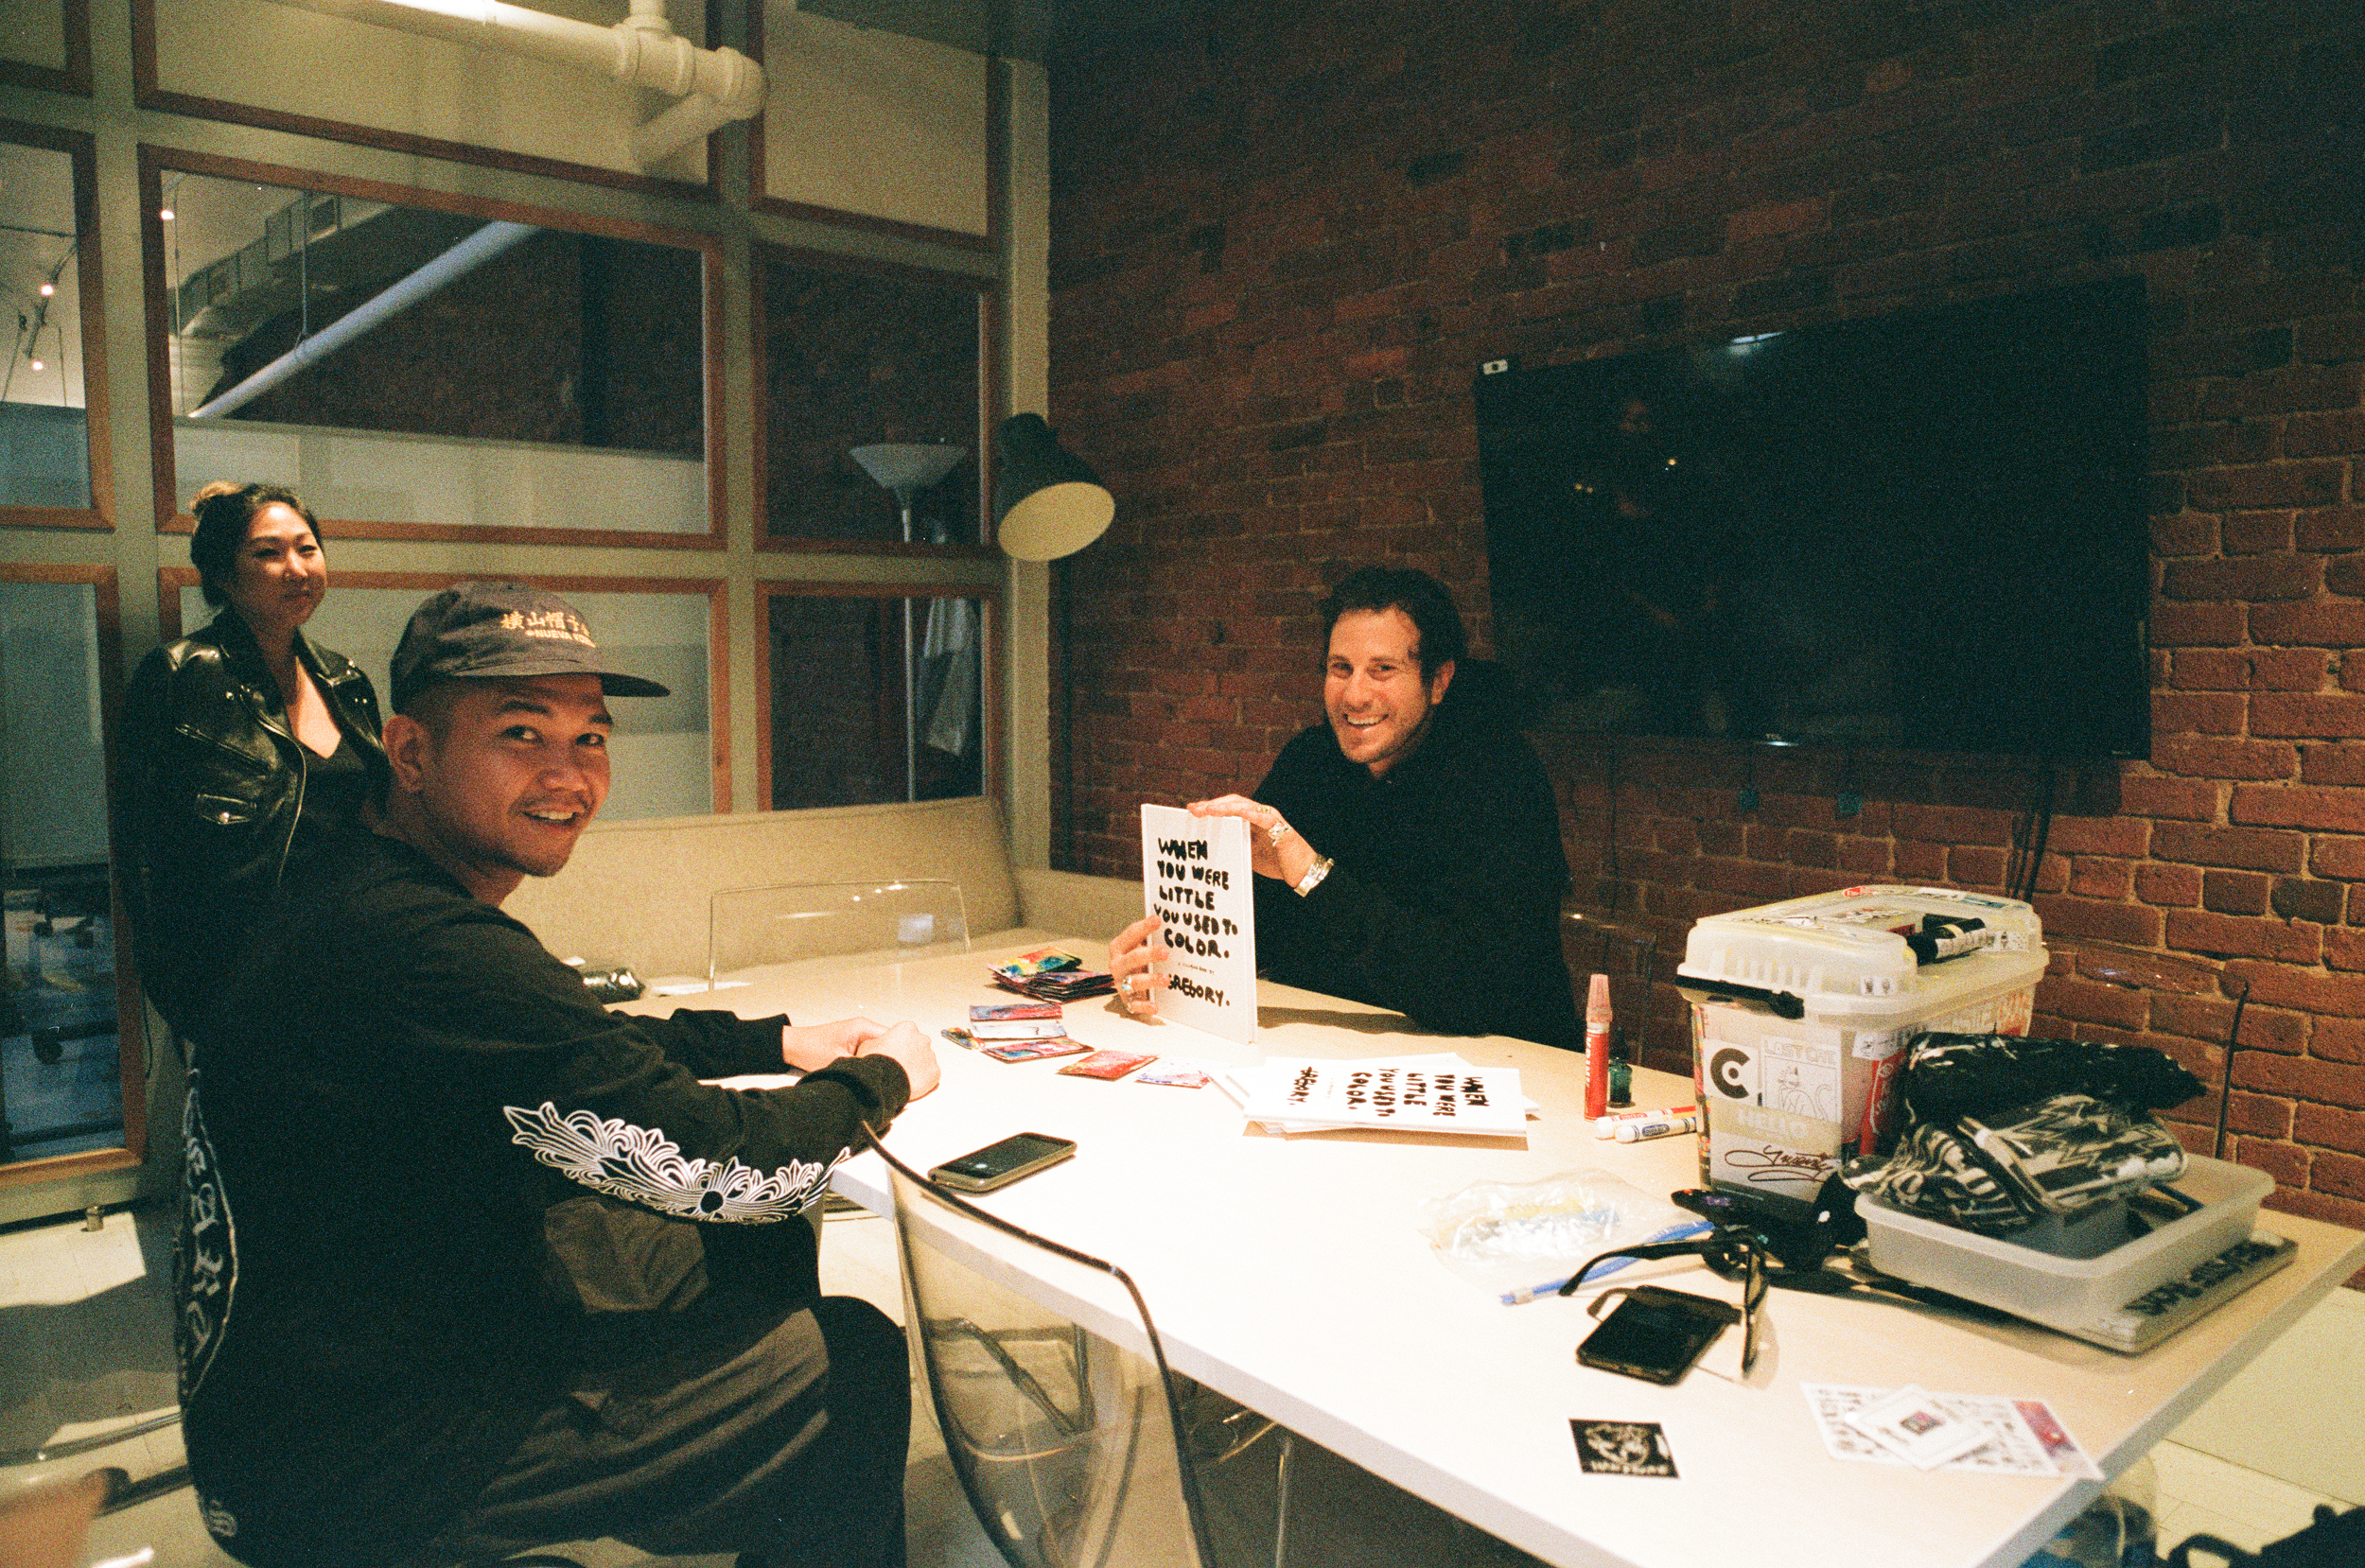 Gregory Siff at Hypebeast headquarters